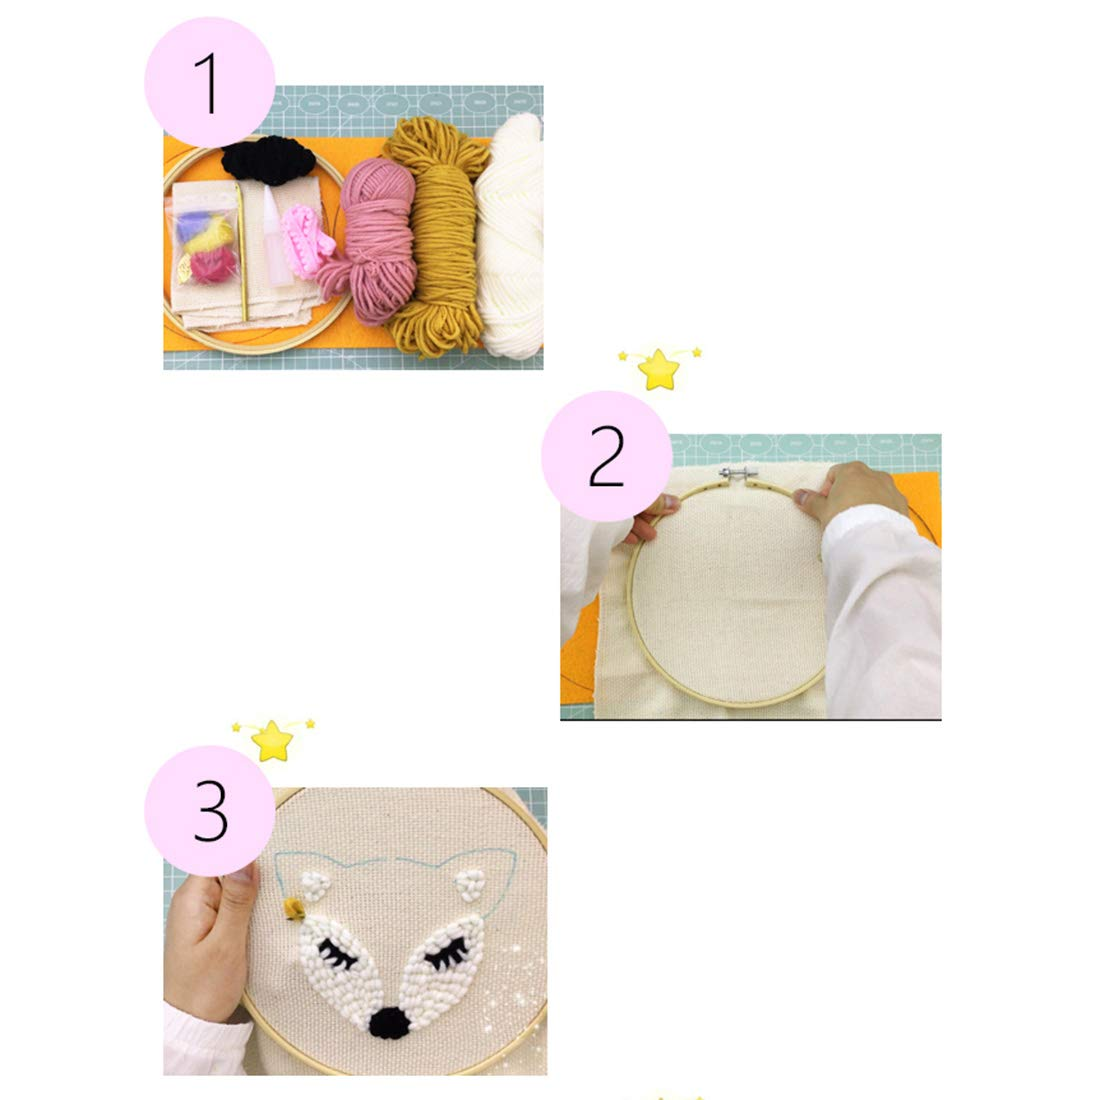 HMANE DIY Rug Hooking Kit Handcraft Woolen Embroidery Knitting with Punch Needle Embroidery Frame Creative Gift with Punch Needle Embroidery Frame Little Fox